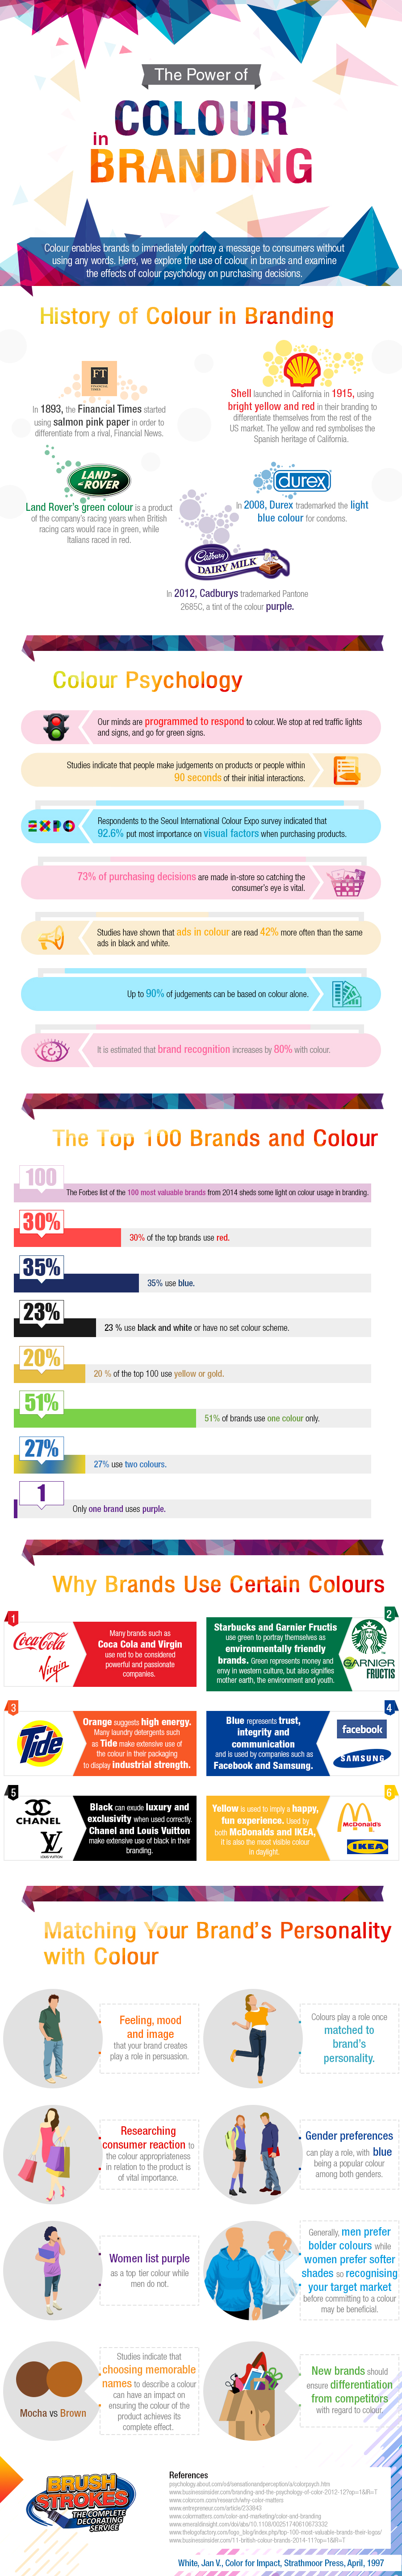 The-Power-of-Colour-in-Branding-Infographic